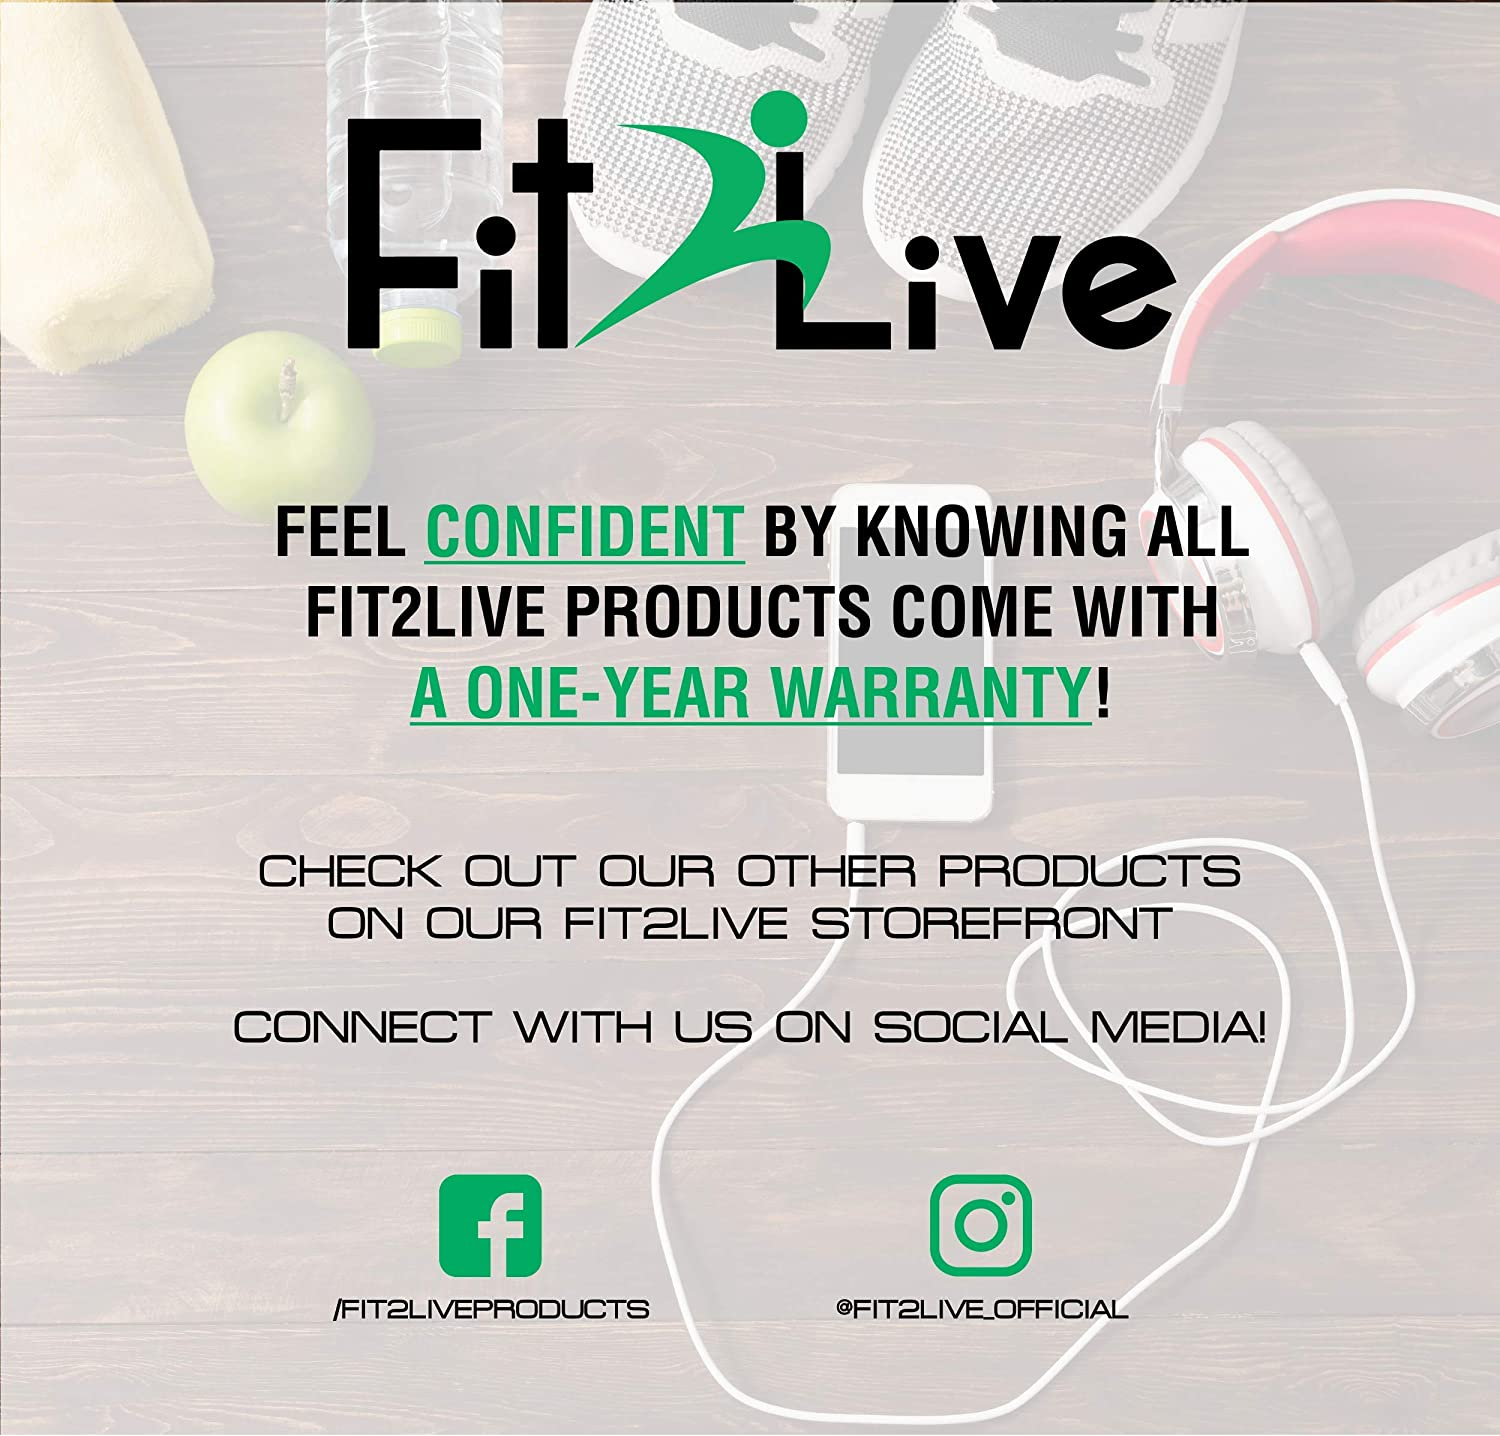 Fit2Live Jump Rope Boxing Armband Adjustable and Comfortable Rubber Handles for Endurance Workout Plus Access to Our APP for Workouts MMA Martial Arts Weight Loss for Men and Women